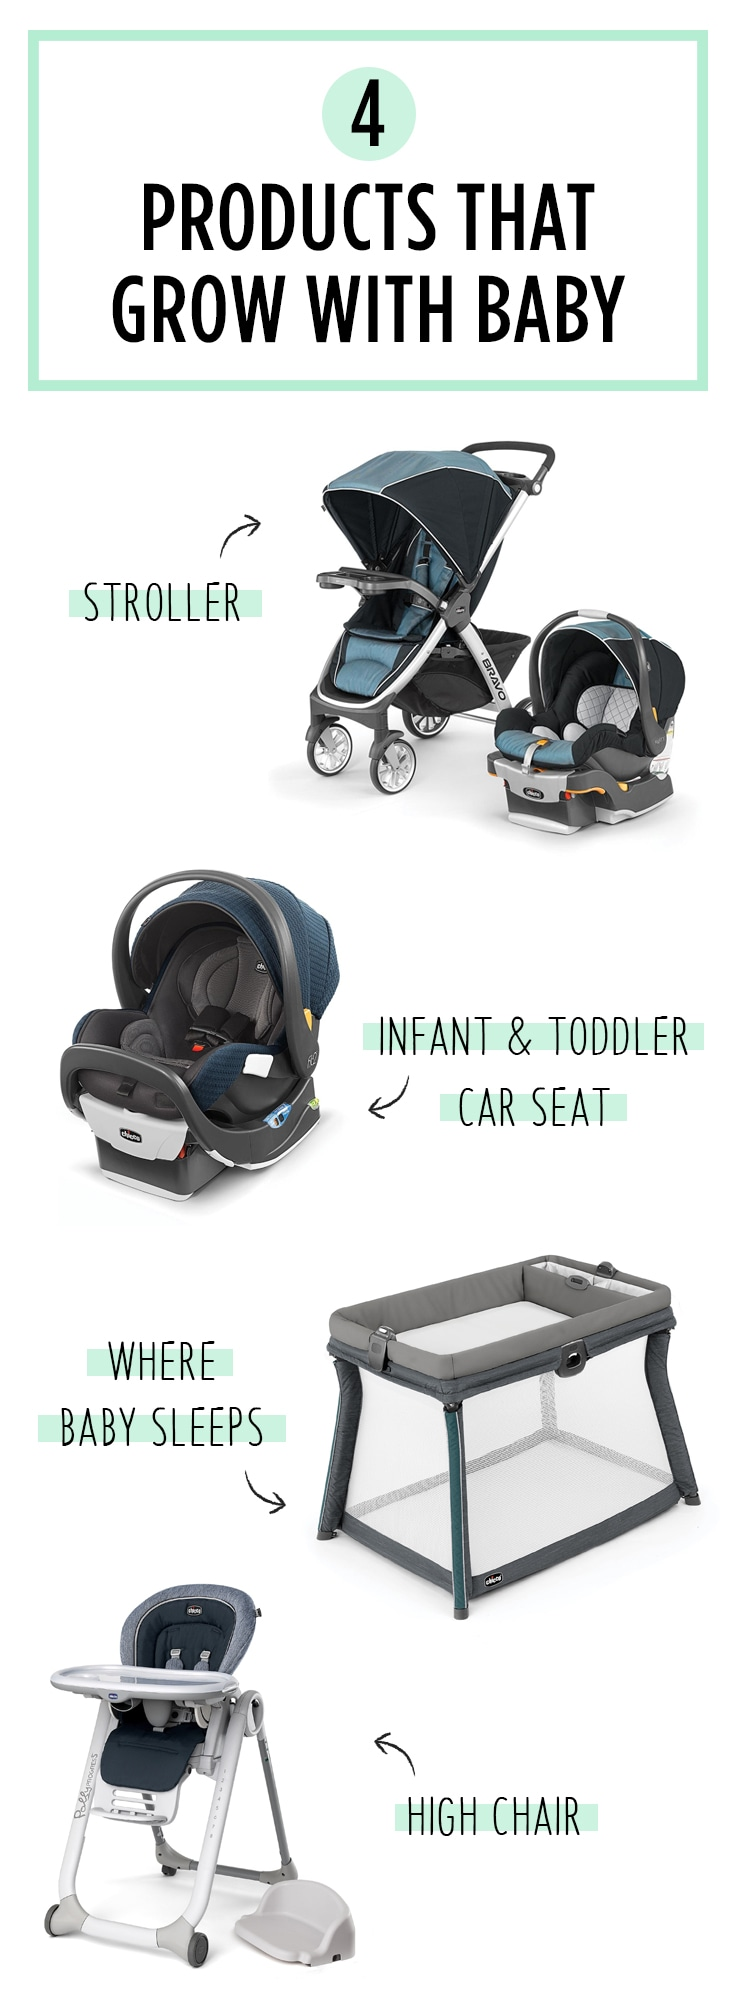 Here are some tips on which baby gear products will last you longer than others.